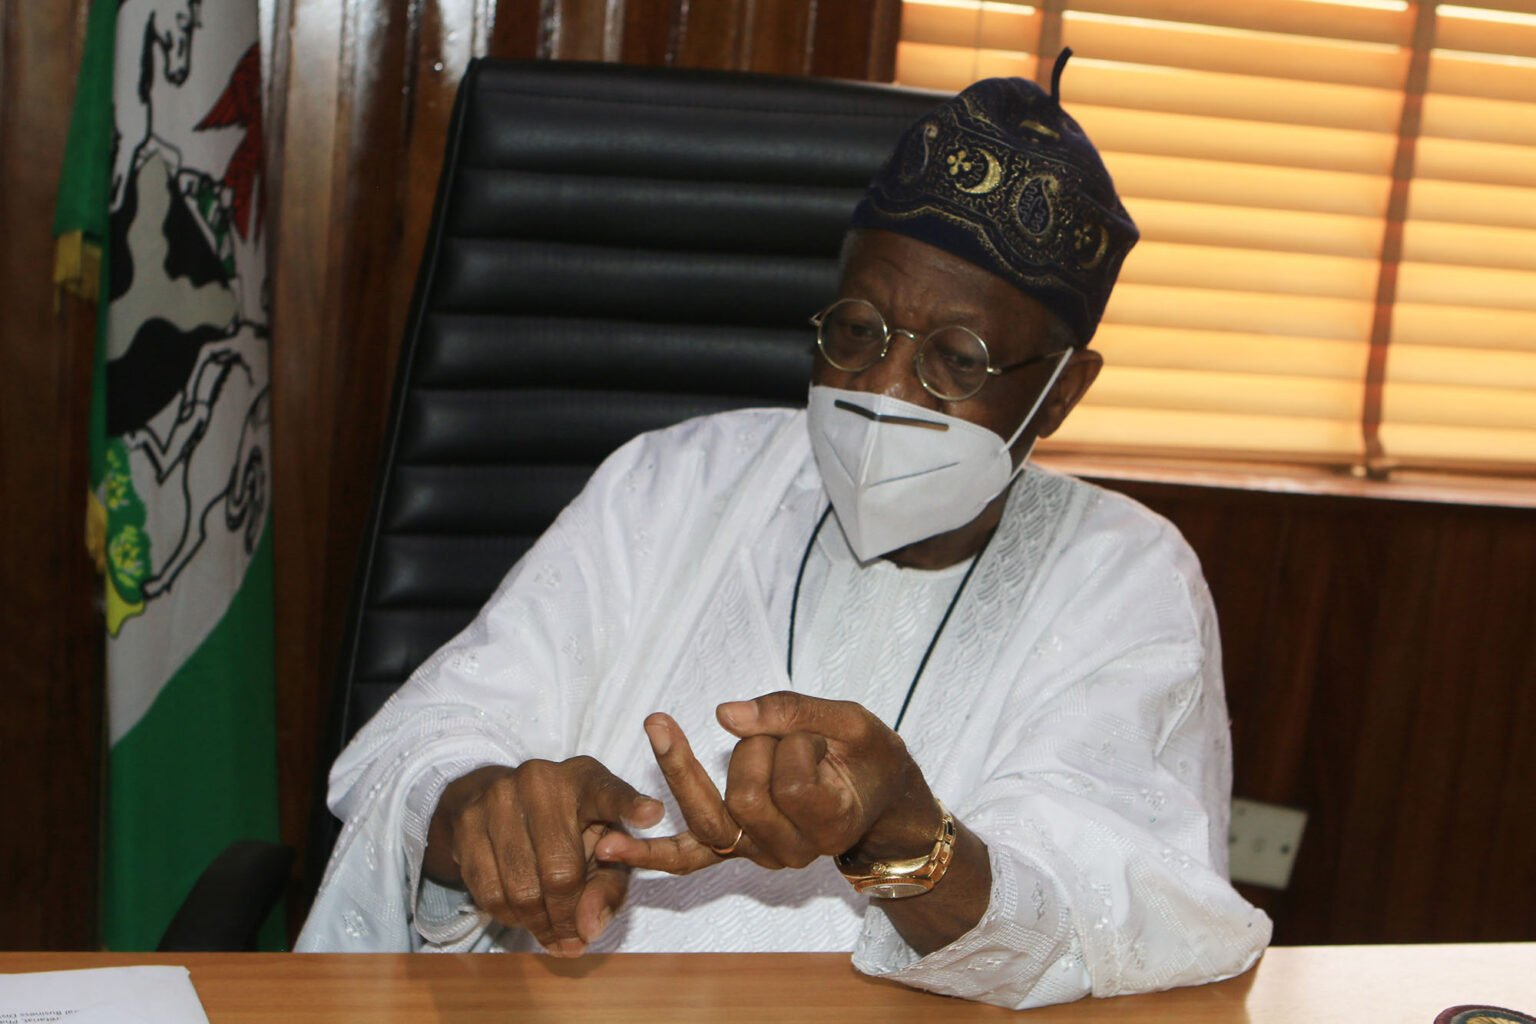 Twitter, other OTTs must now register with CAC, FG insists